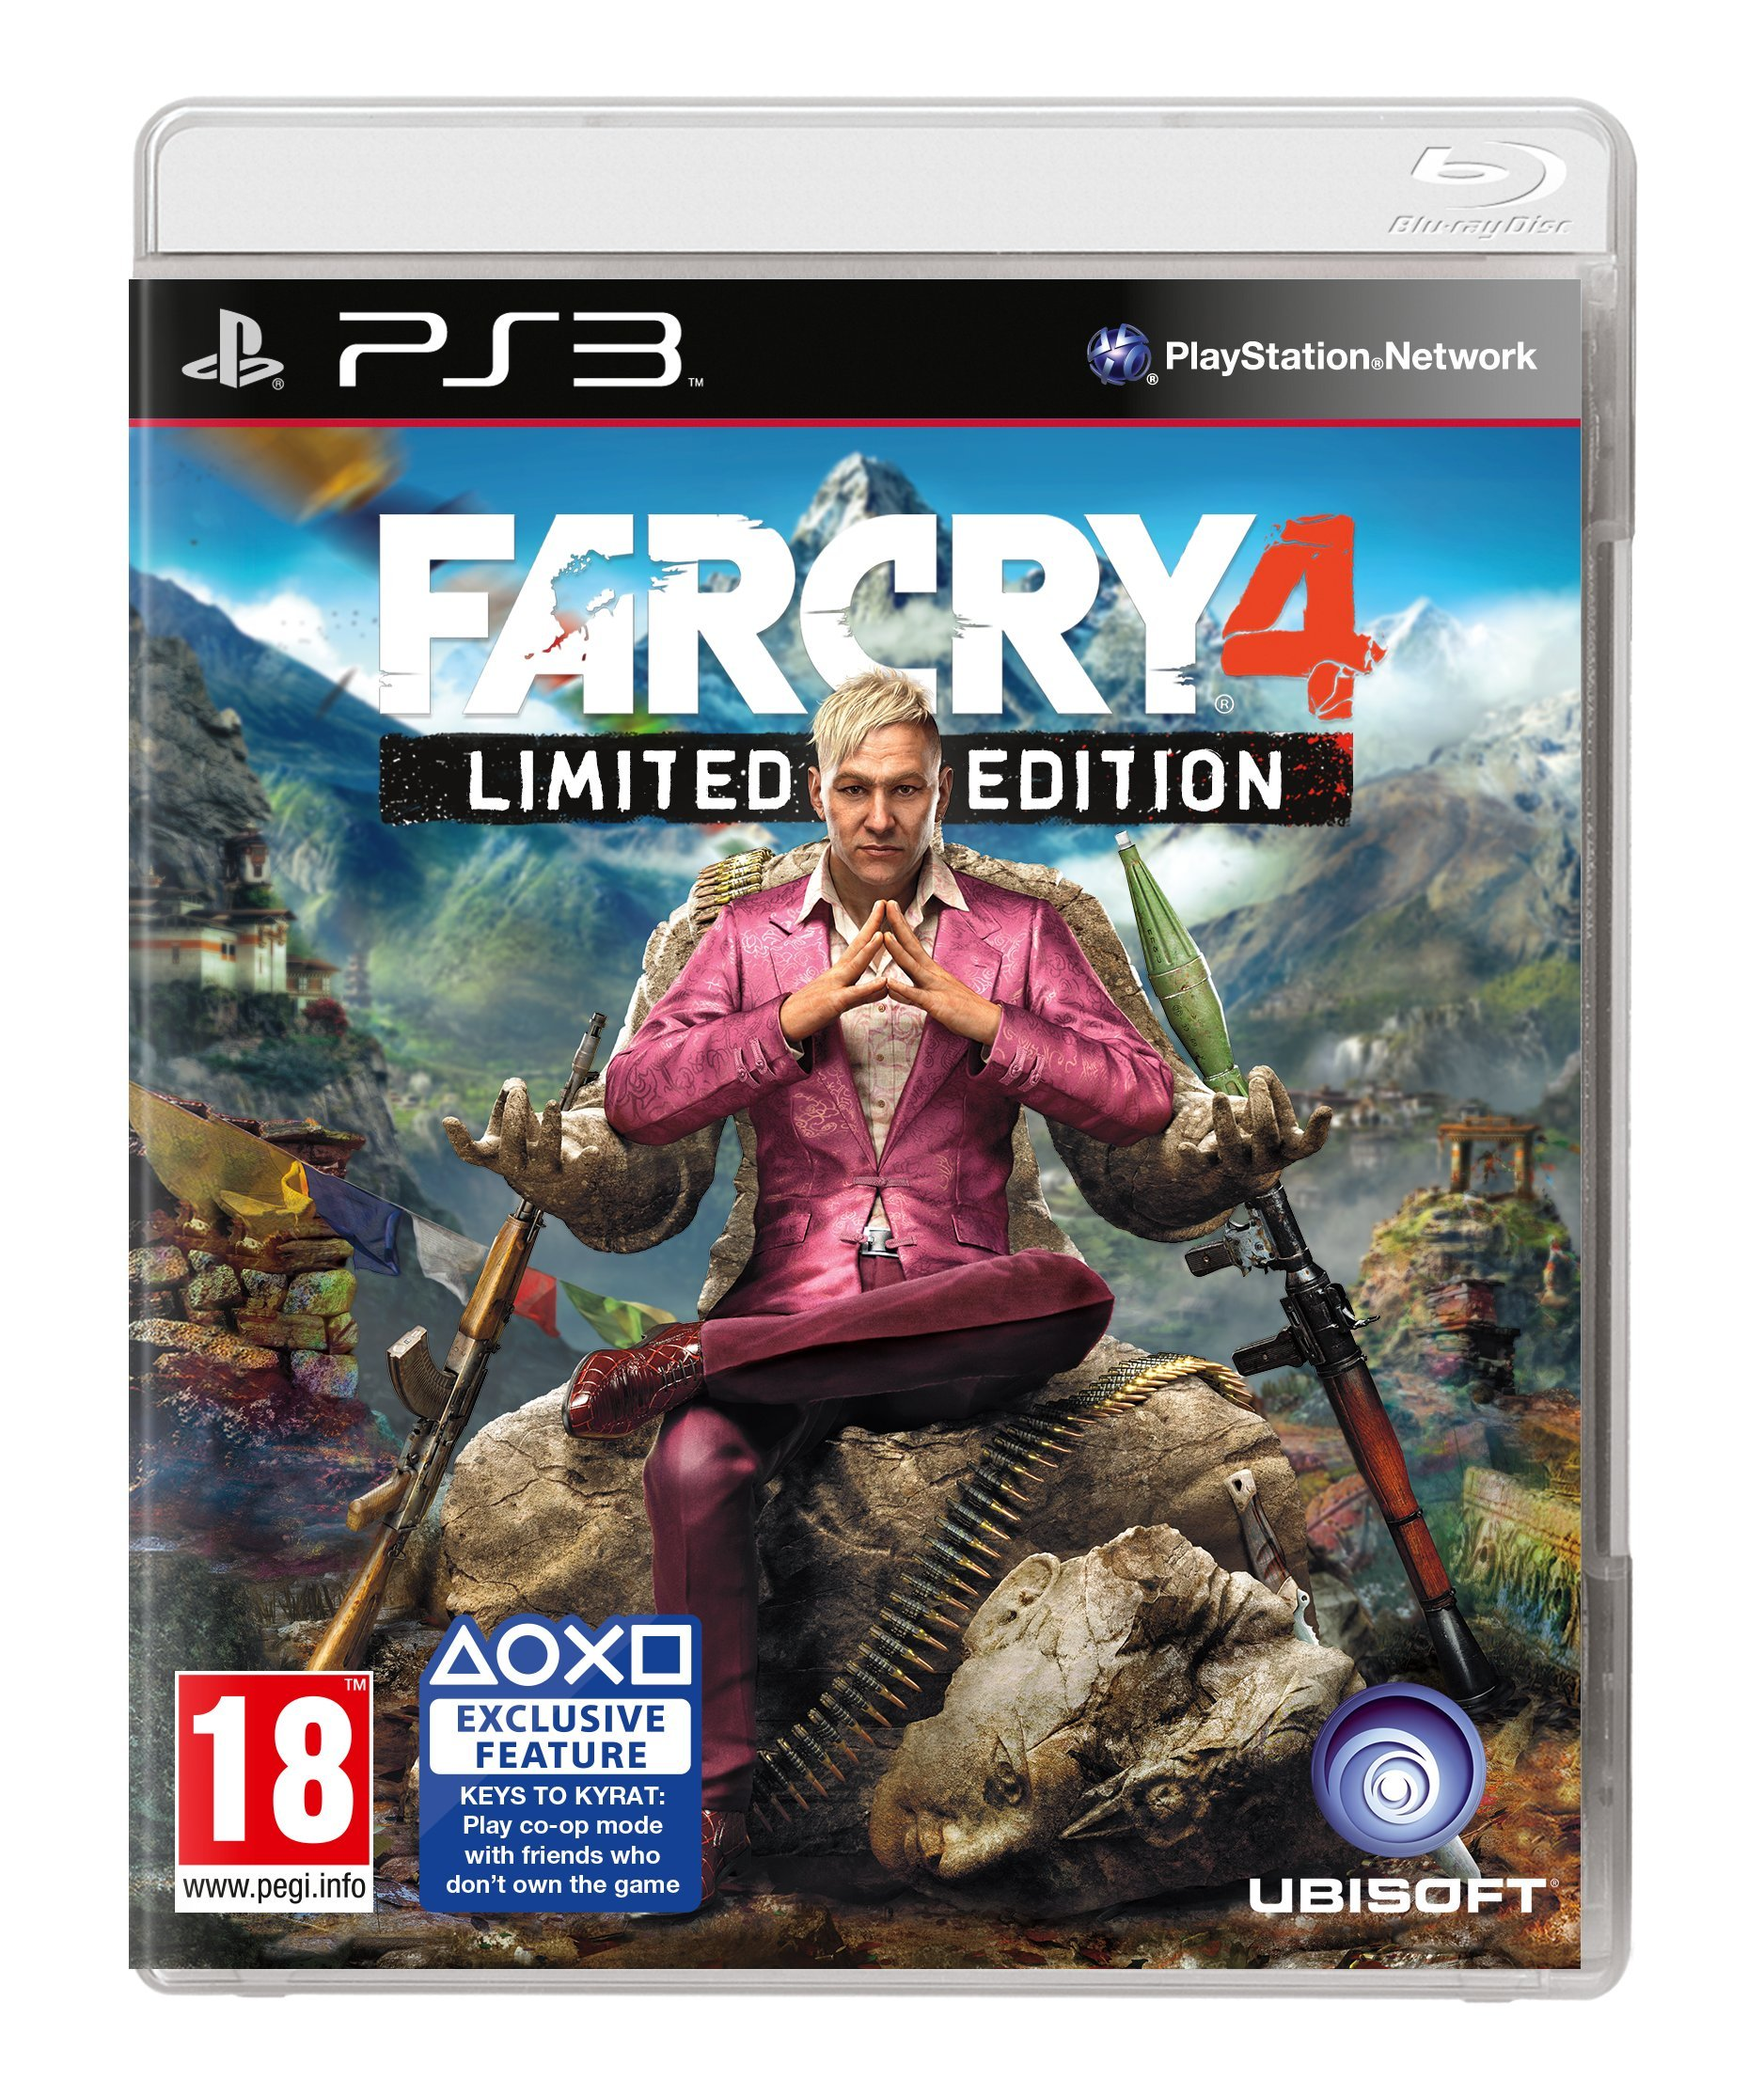 Far Cry 4 Limited Edition Ps3 Buy Online In Barbados Visit The Ubisoft Store Products In Barbados See Prices Reviews And Free Delivery Over Bds 150 Desertcart